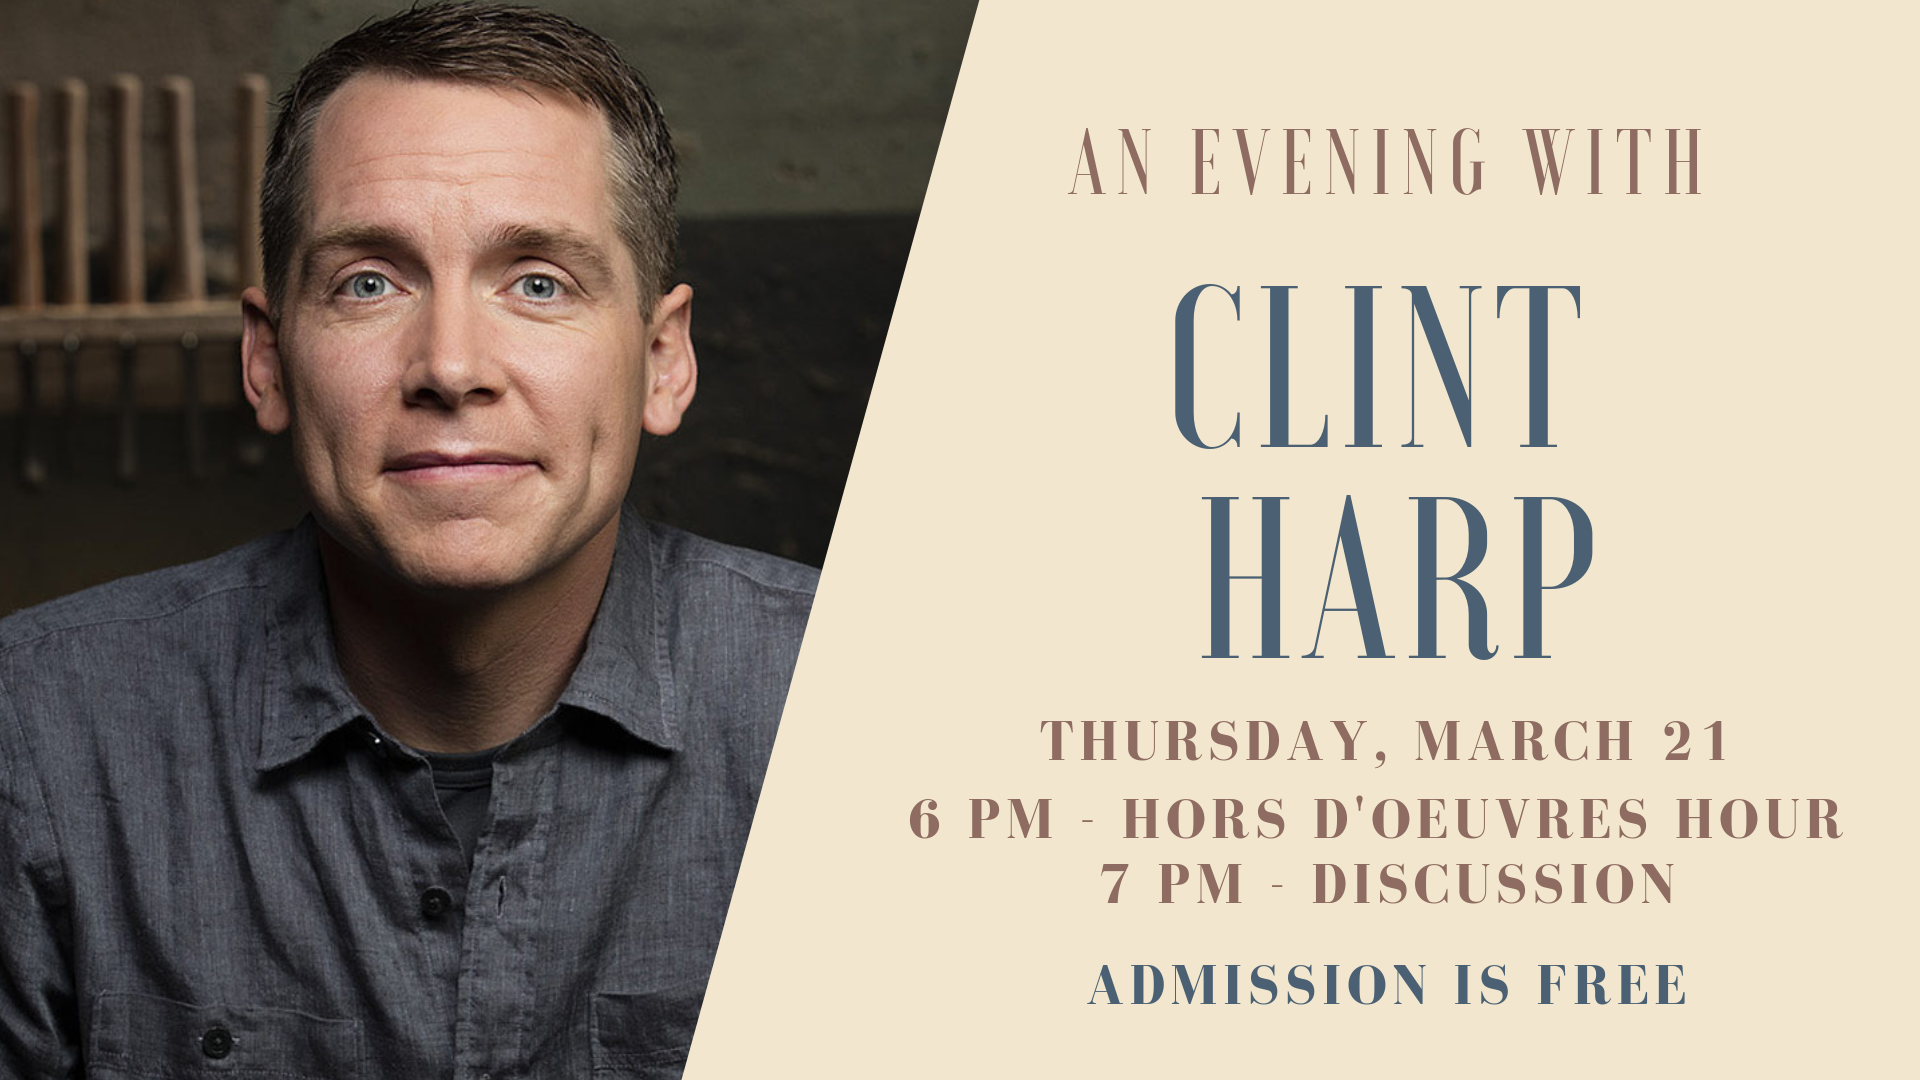 Clint Harp FB Event Cover 2-20.png